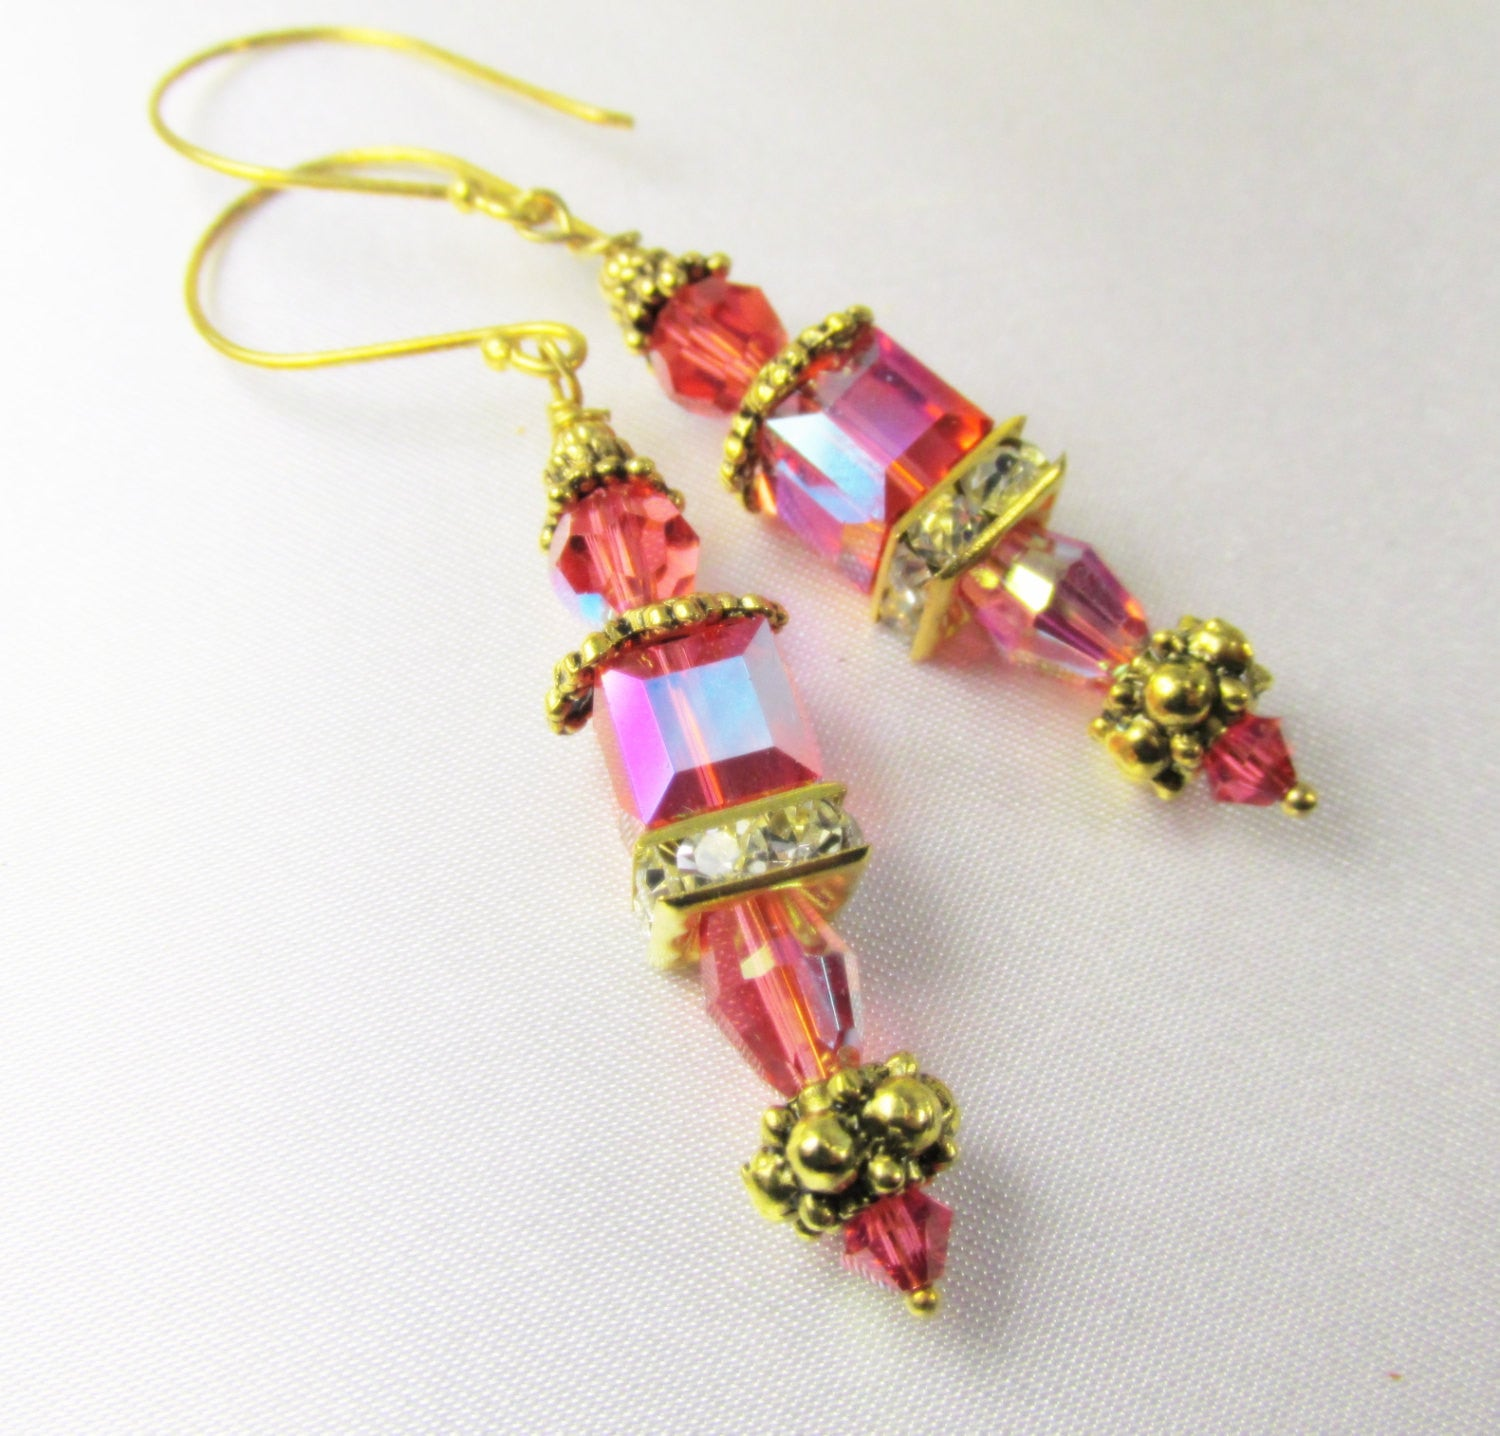 Swarovski Cube Coral Padparadsha AB aurora borealis Earrings on 22k Gold Vermeil Bali wires - Odyssey Creations